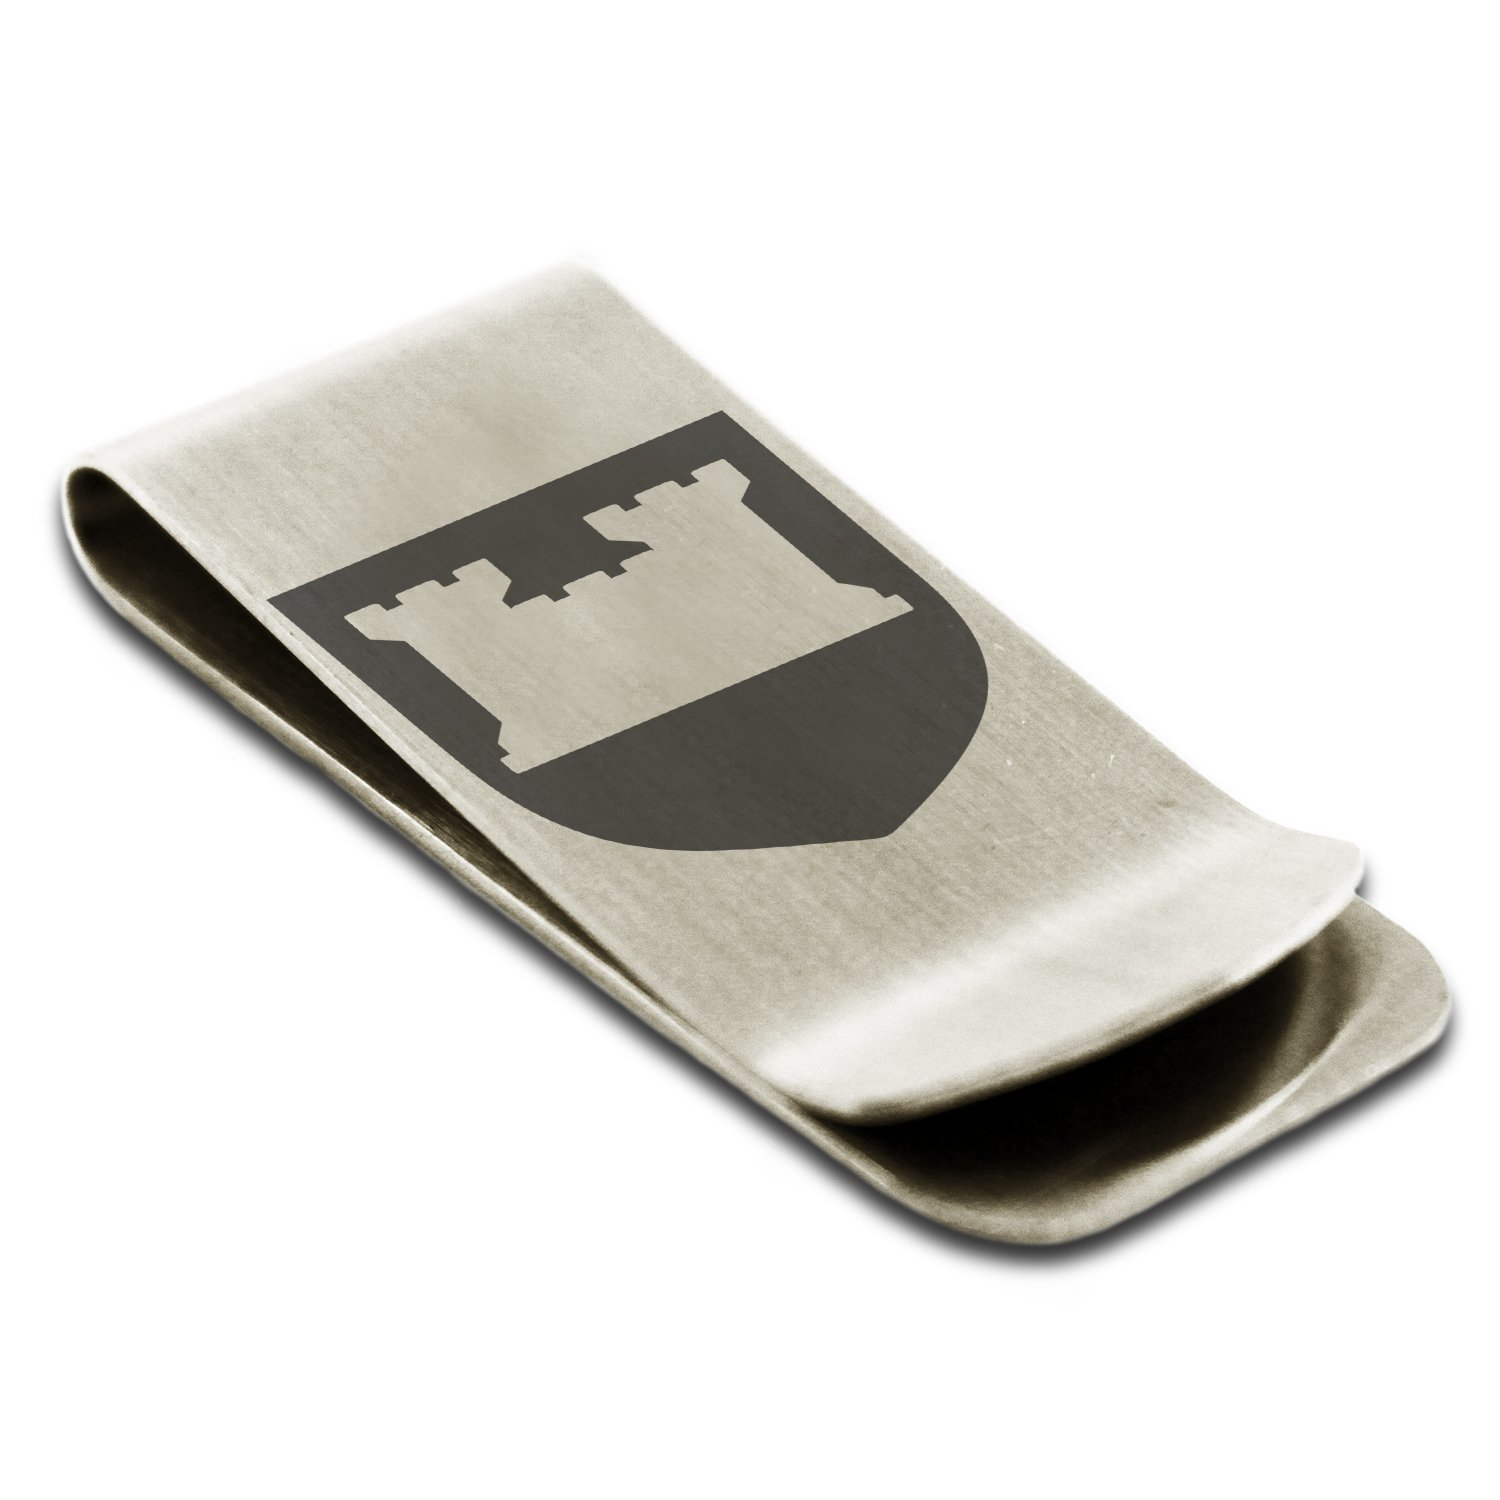 Stainless Steel Castle Protection Coat of Arms Shield Symbol Engraved Money Clip Credit Card Holder